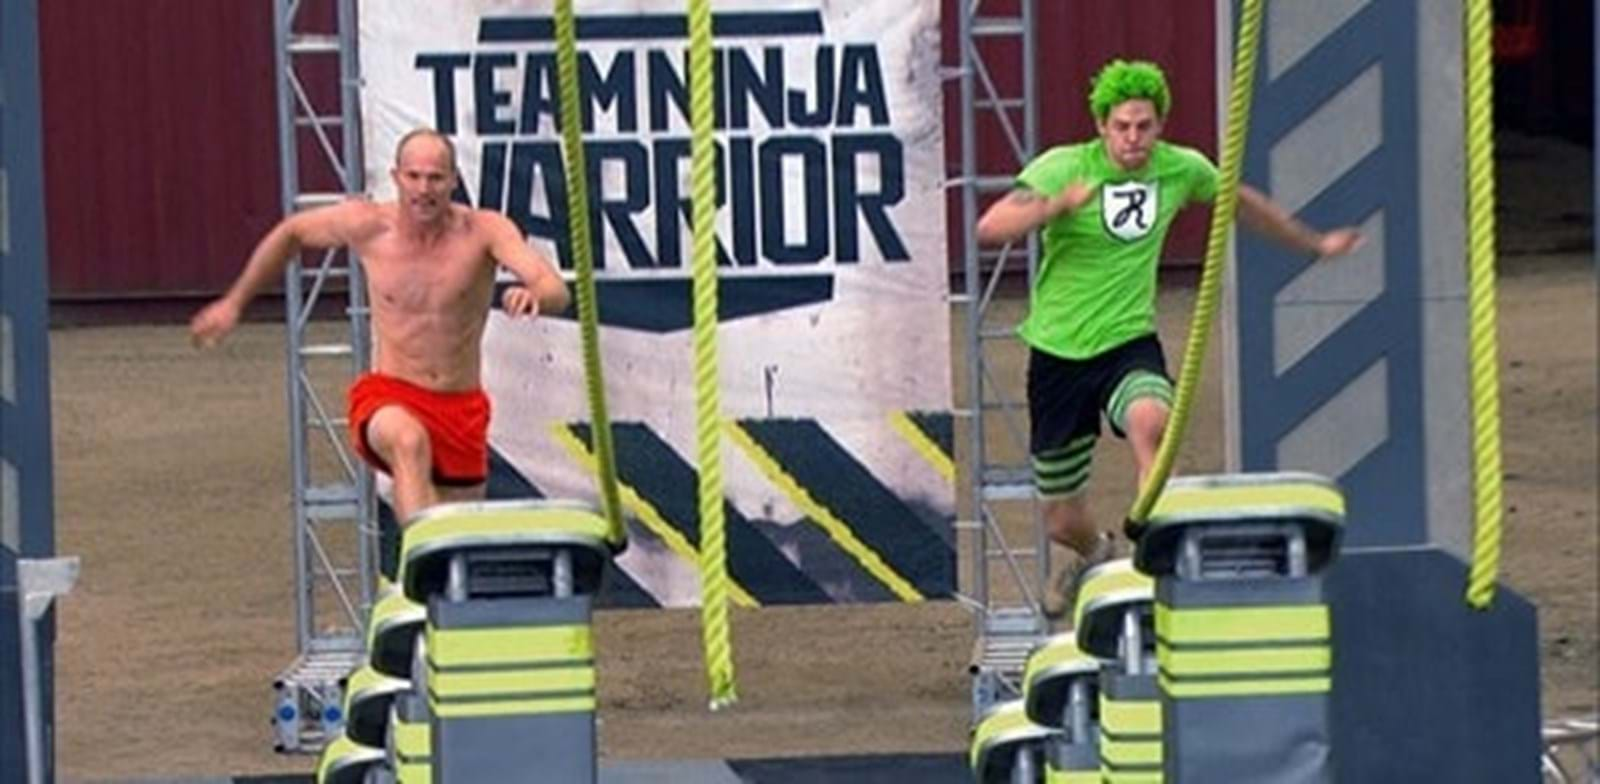 'TEAM NINJA WARRIOR' MOVING TO USA NETWORK